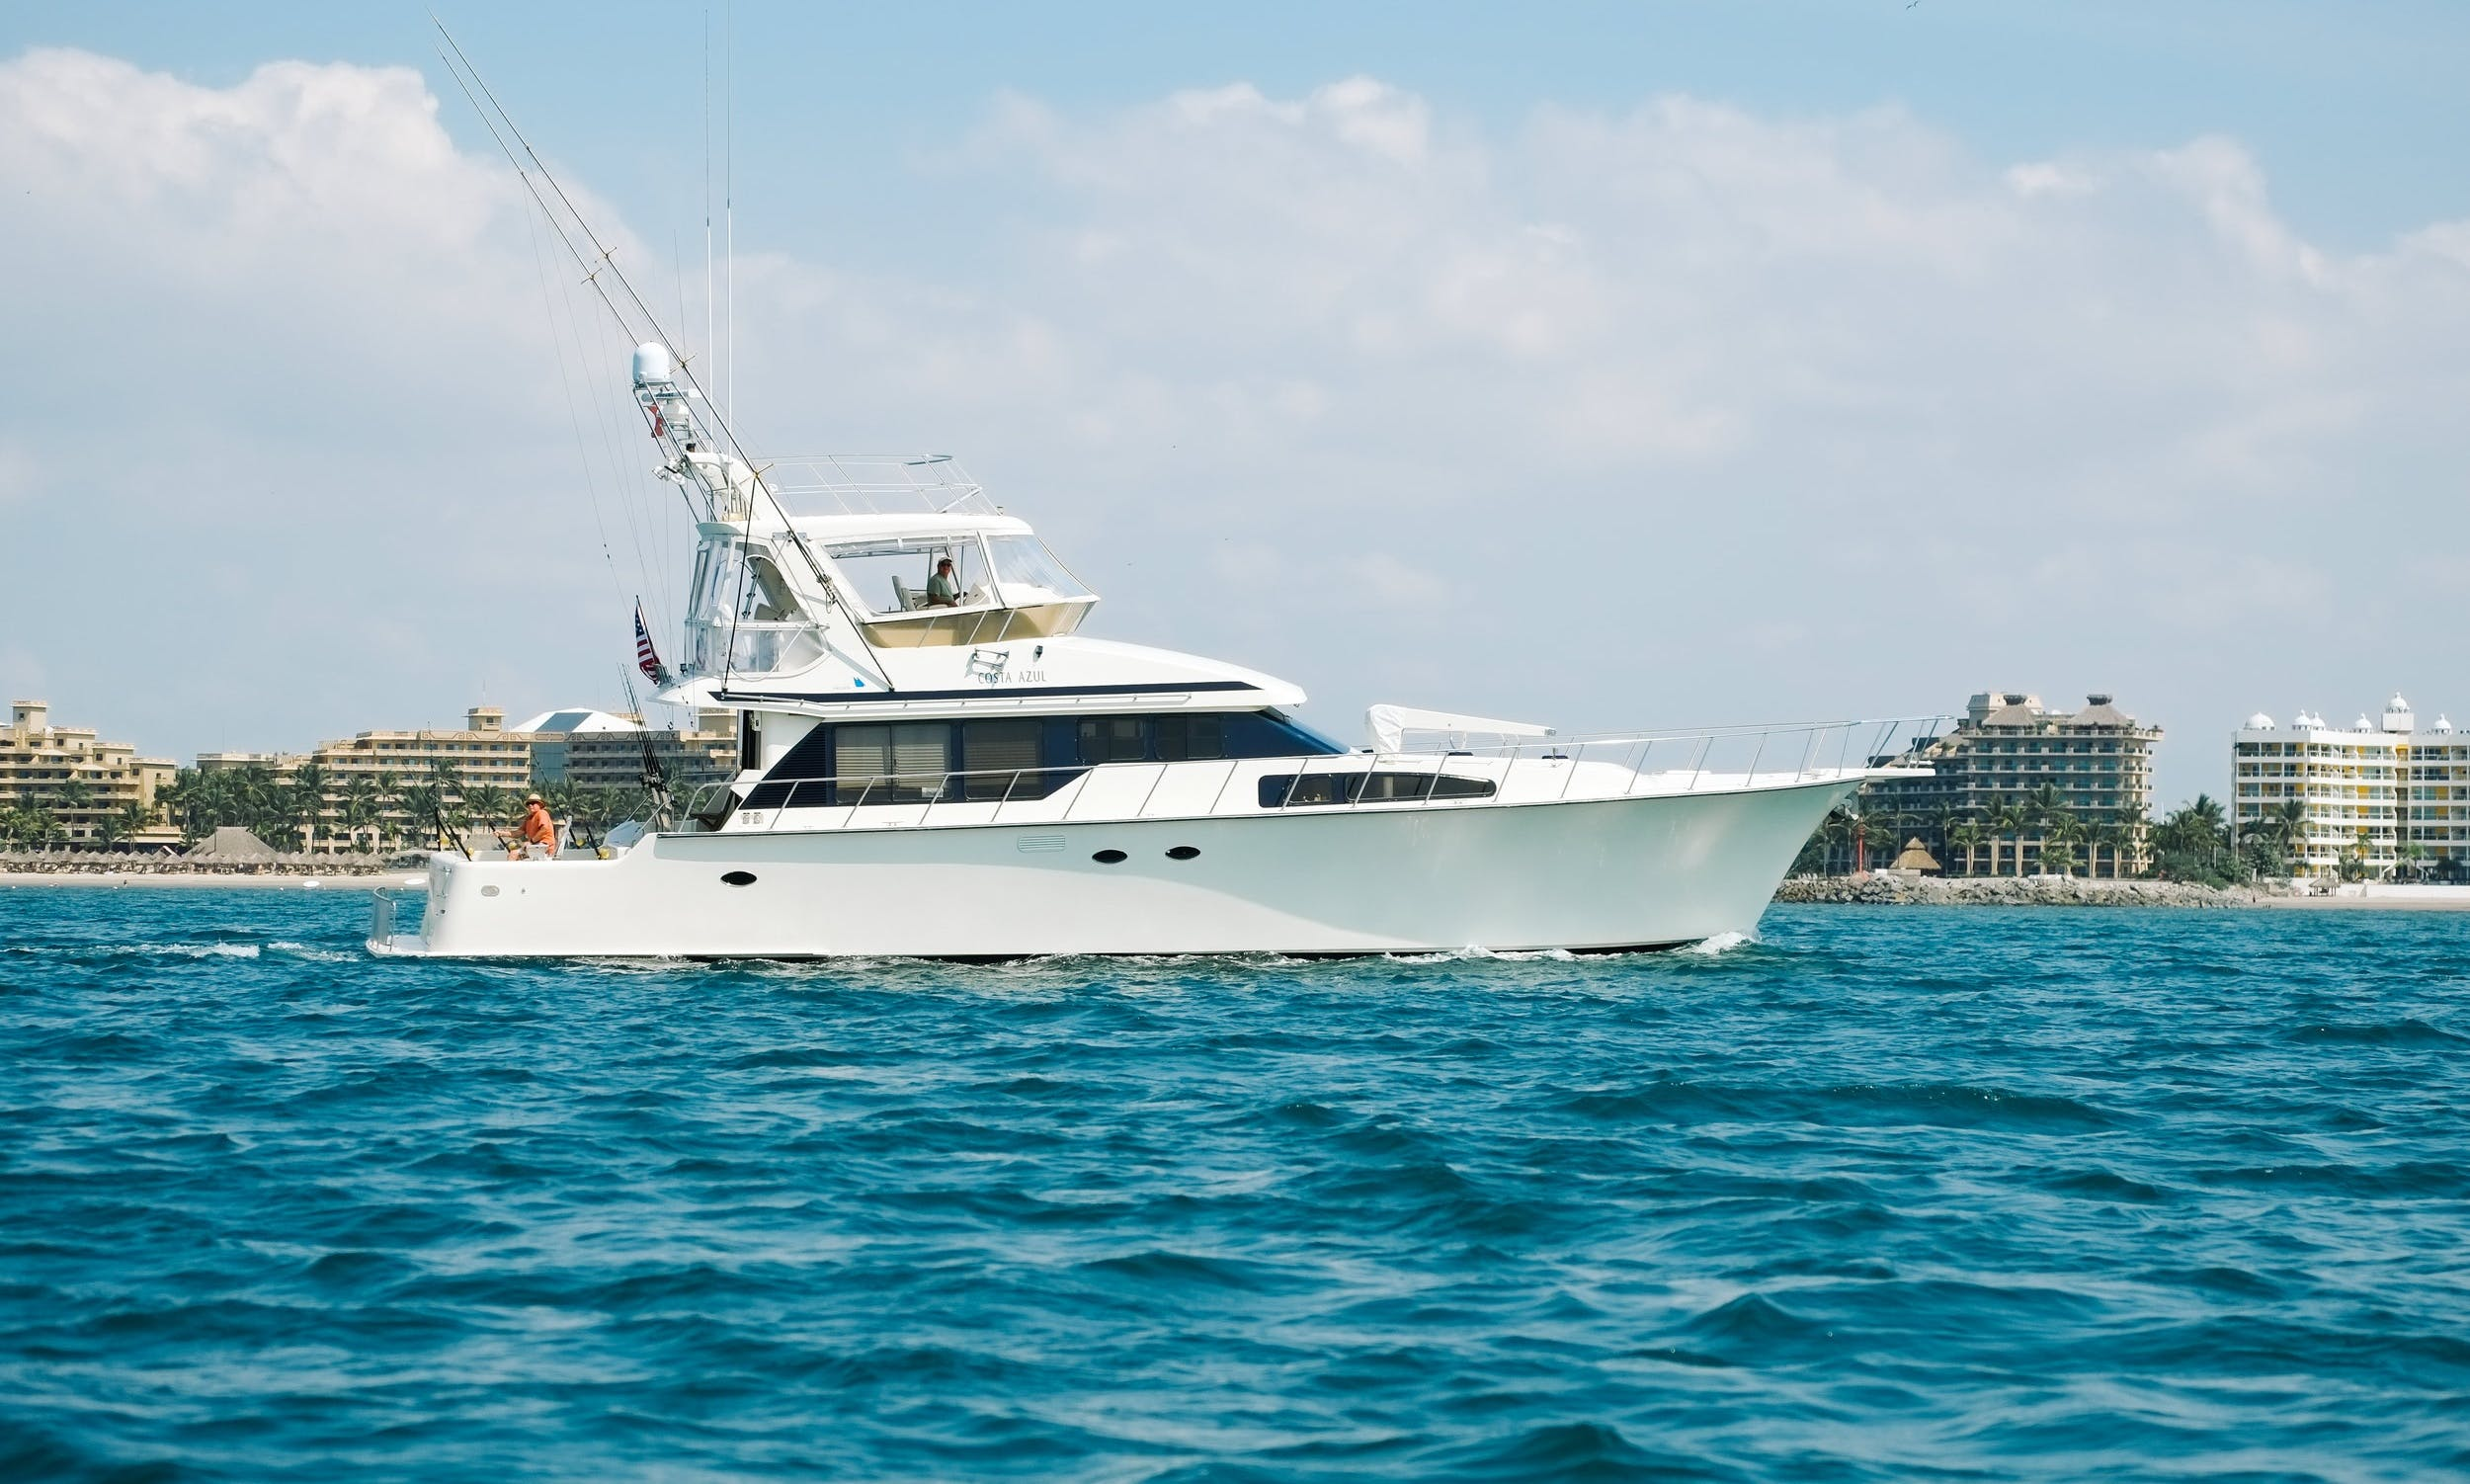 64ft Mikelson fishing charter in Nuevo Vallarta